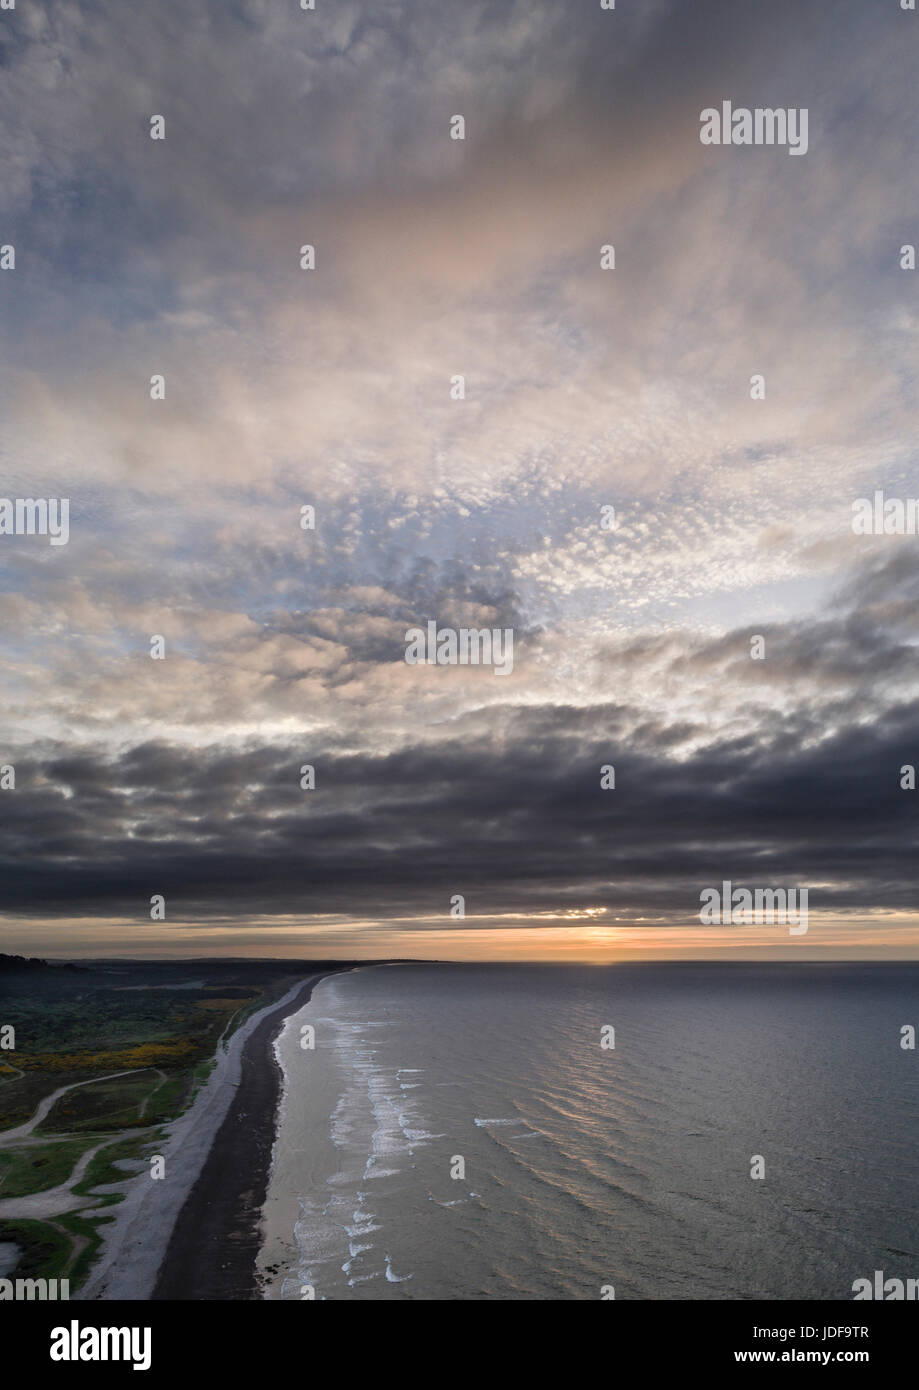 Sunset at Kingston on Spey, looking towards Lossiemouth, aerial images. - Stock Image